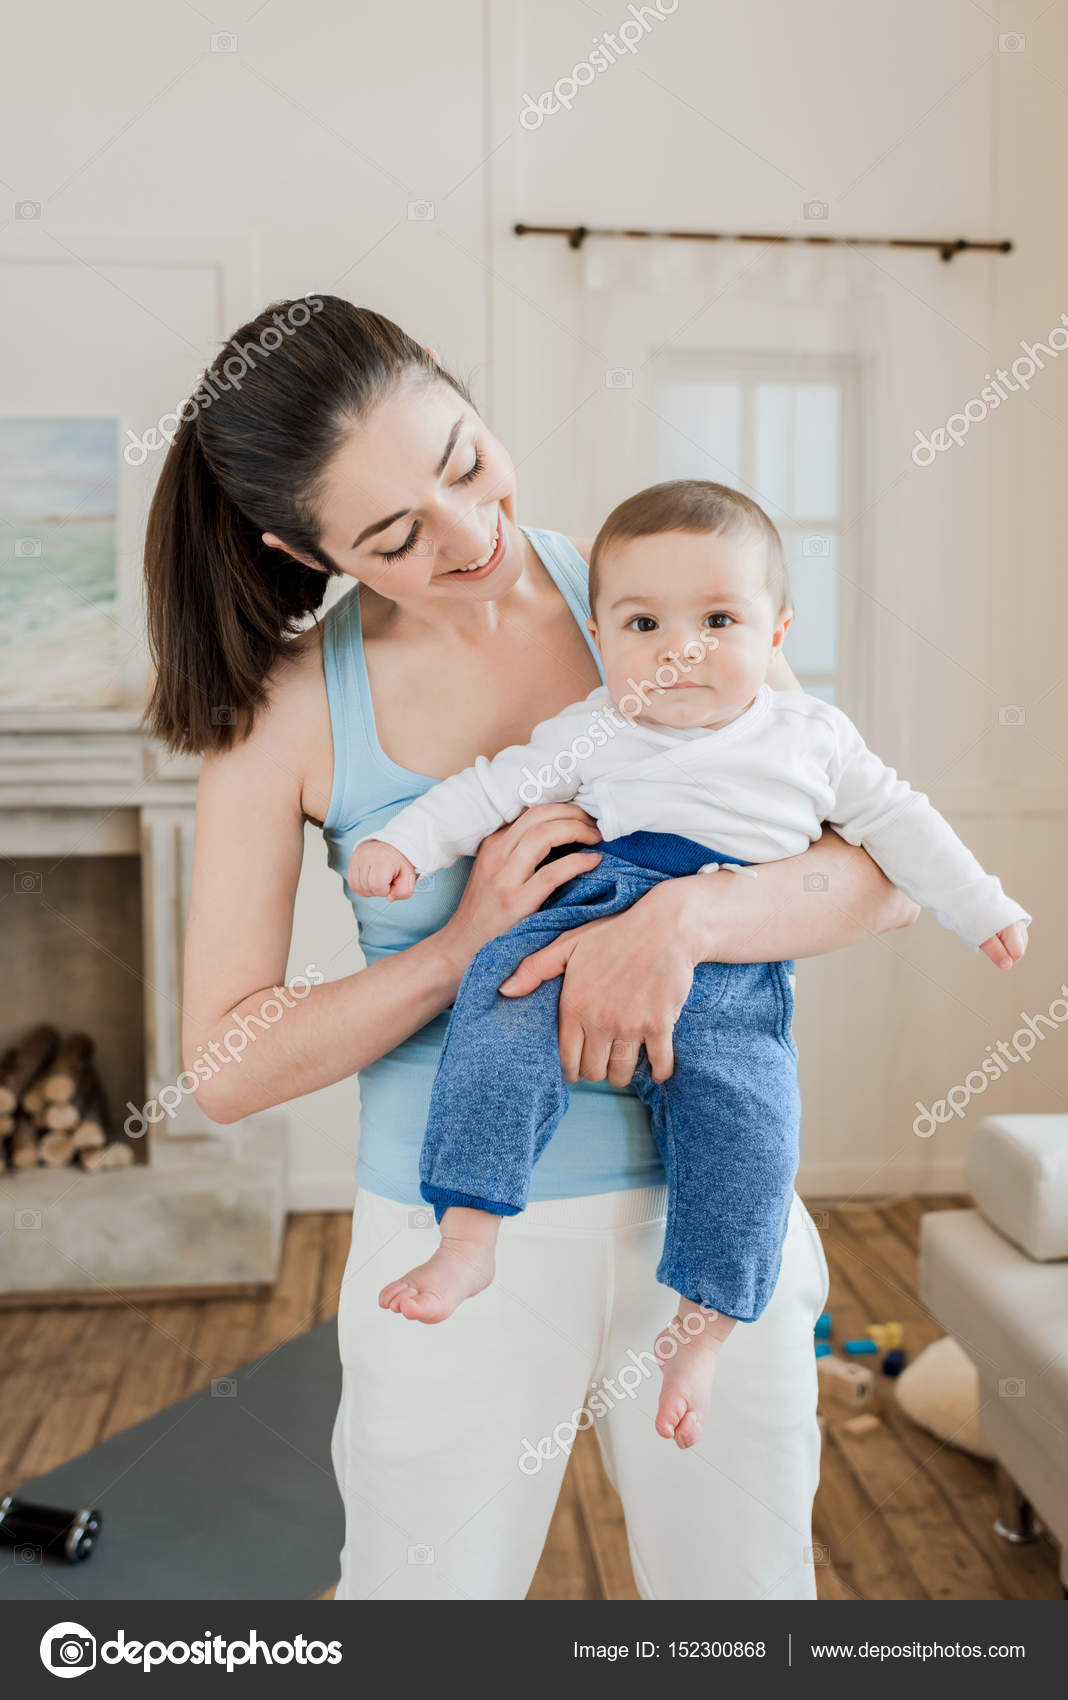 Woman Carrying Baby Child On Arms Stock Photo